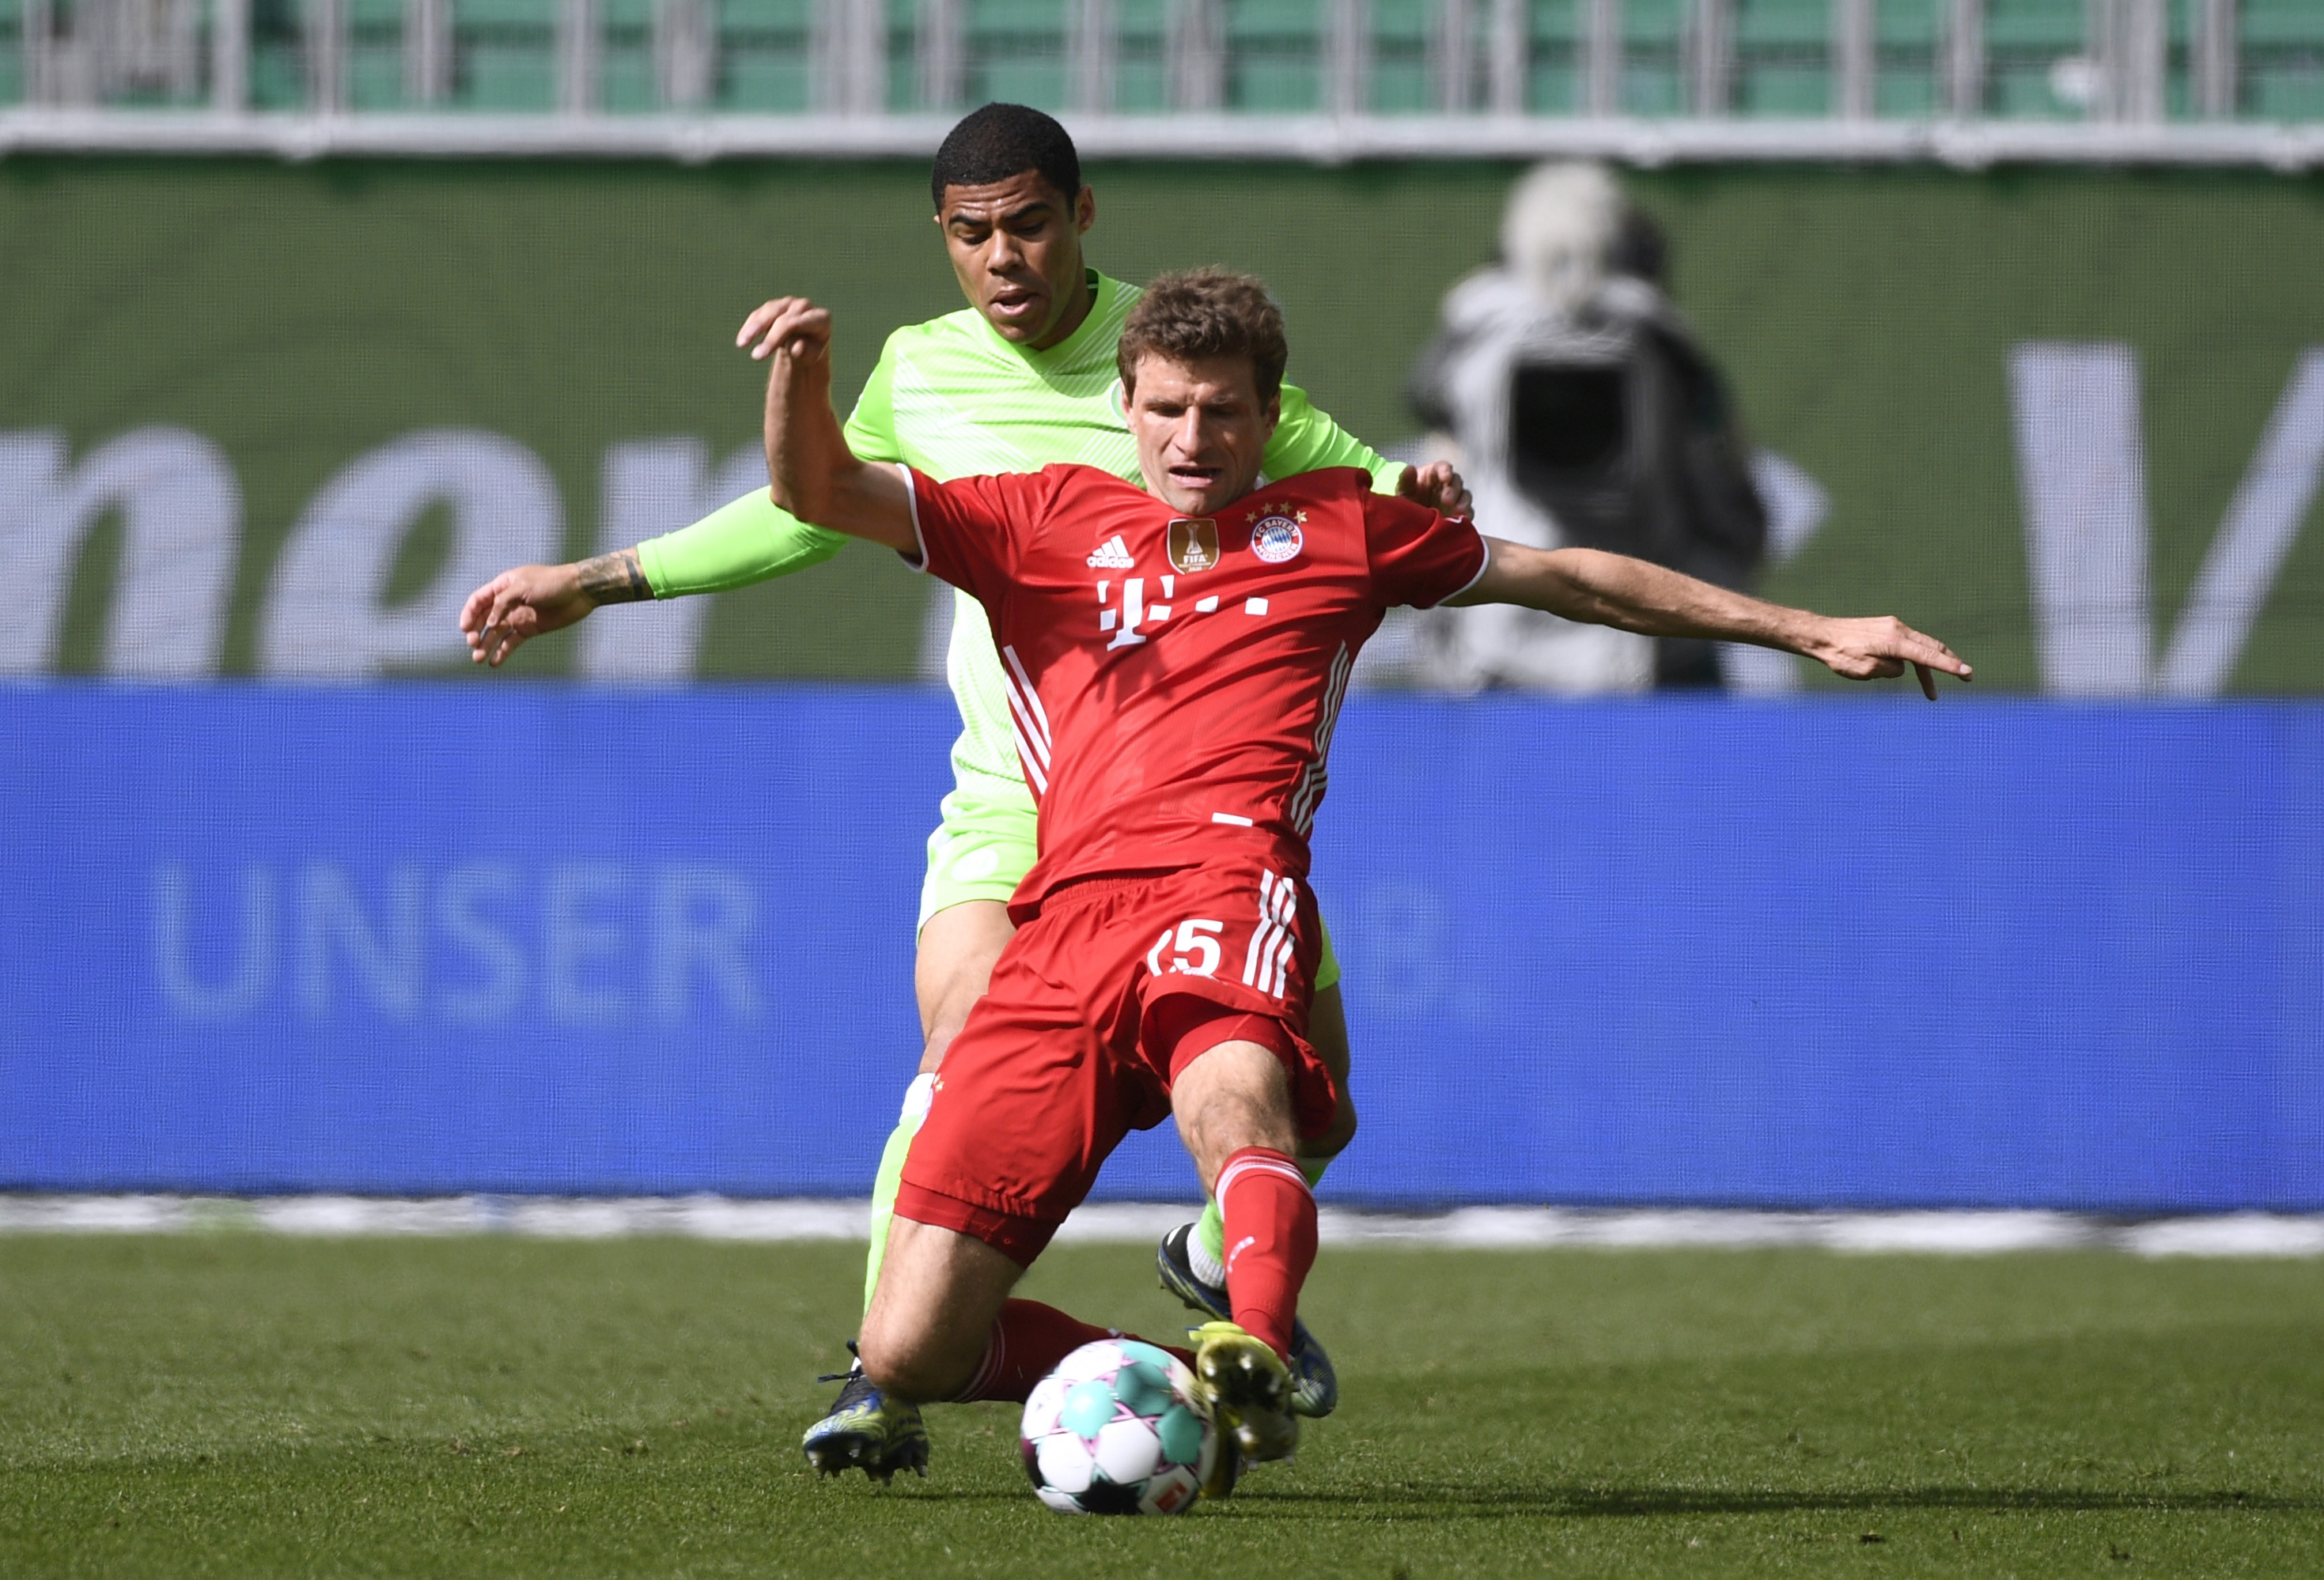 Soccer Football - Bundesliga - VfL Wolfsburg v Bayern Munich - Volkswagen Arena, Wolfsburg, Germany - April 17, 2021  Bayern Munich's Thomas Muller Pool via REUTERS/Fabian Bimmer DFL regulations prohibit any use of photographs as image sequences and/or quasi-video.